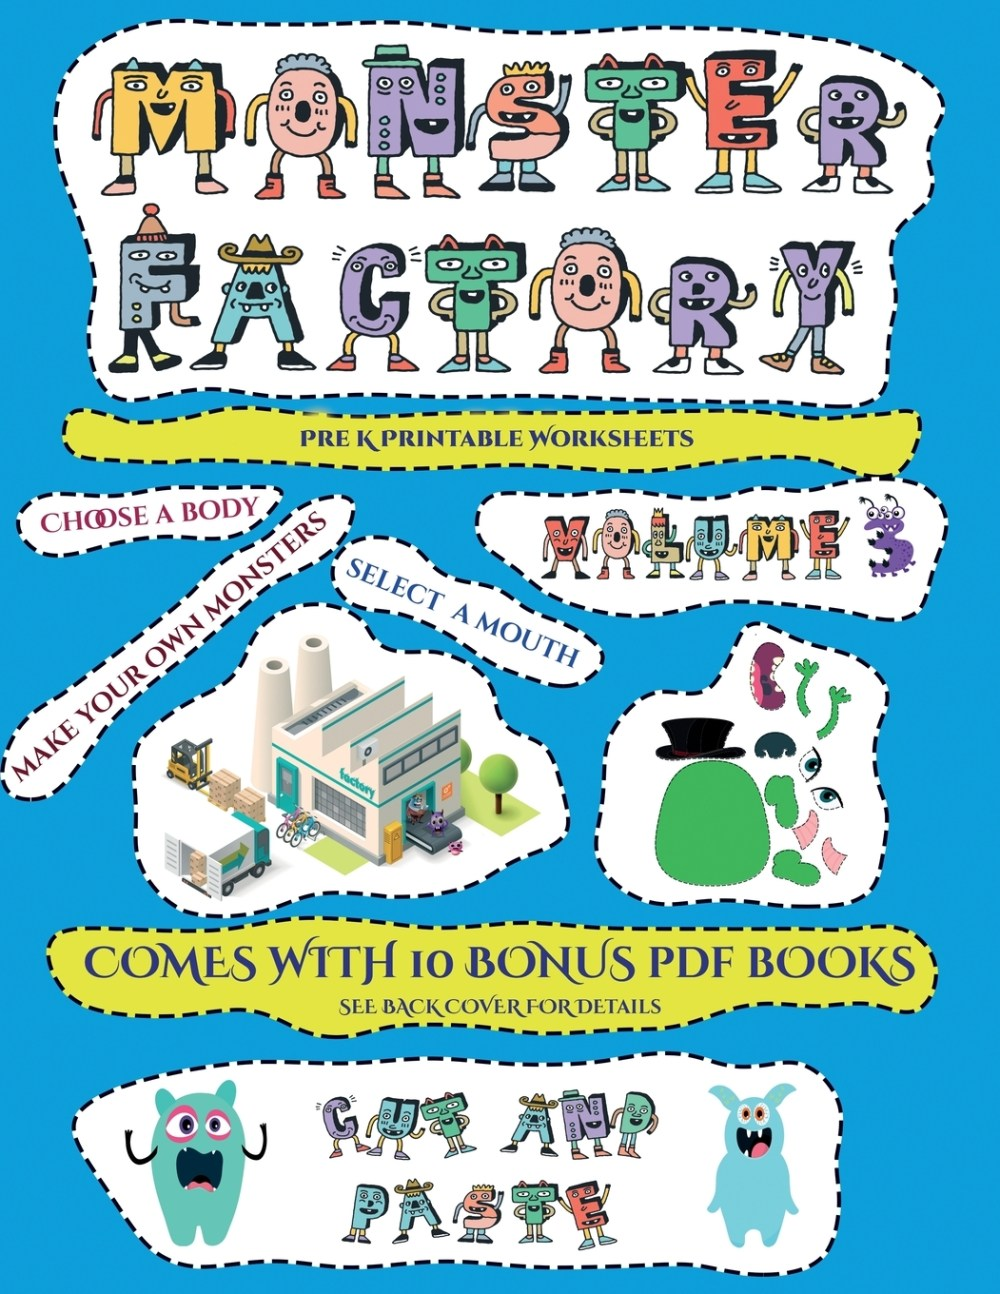 medium resolution of Pre K Printable Worksheets: Pre K Printable Worksheets (Cut and paste  Monster Factory - Volume 3) : This book comes with collection of  downloadable PDF books that will help your child make